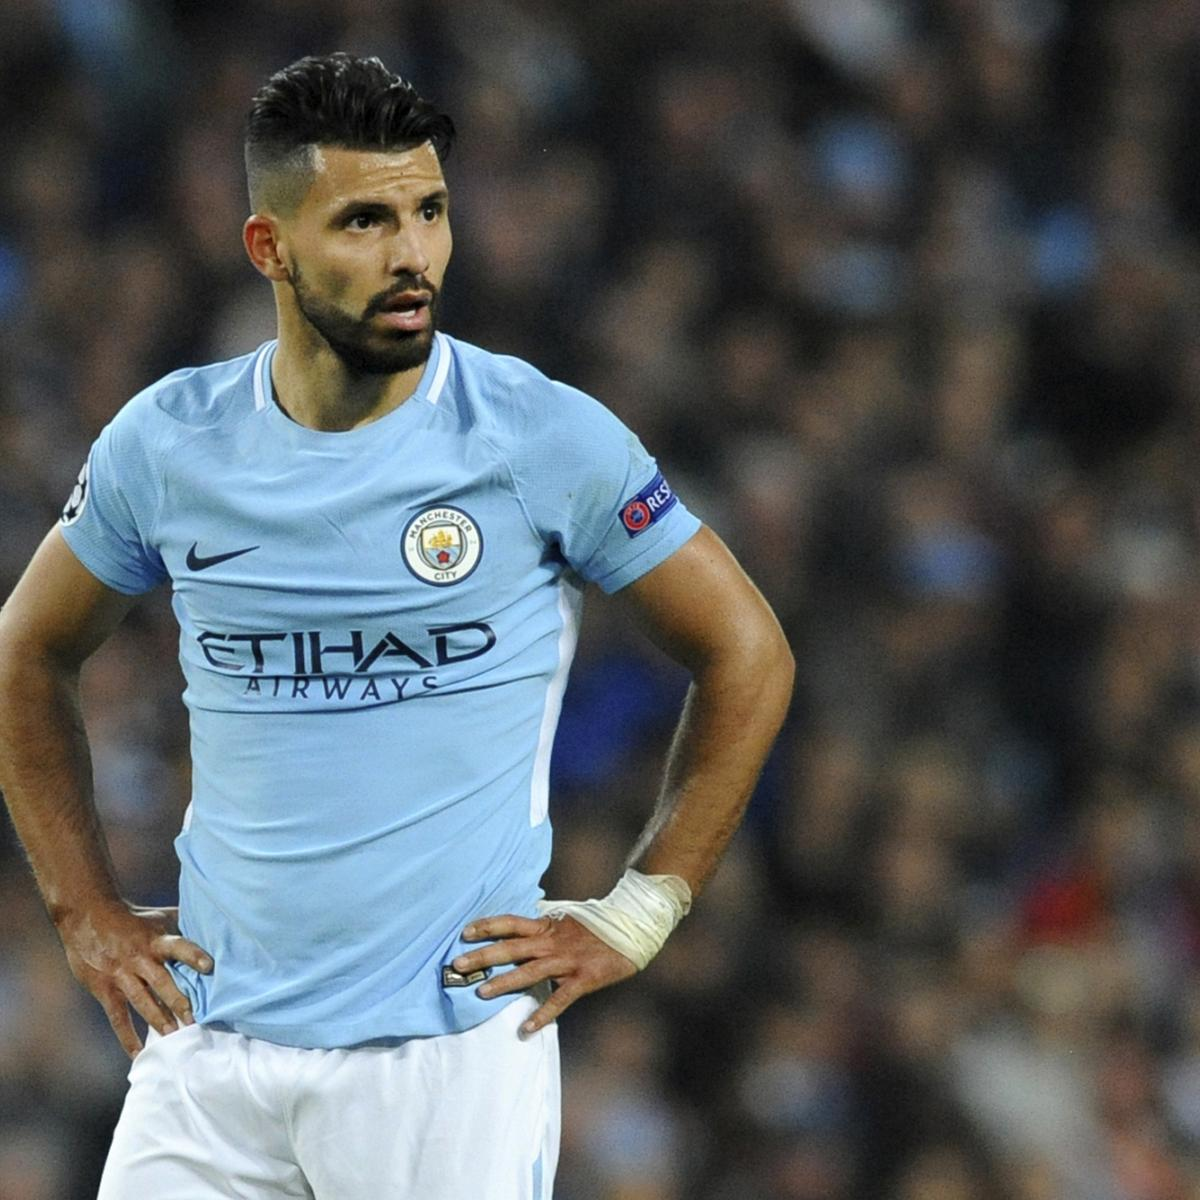 Sergio Aguero Unsure If He'll Play in Manchester City vs. Stoke After Rib Injury